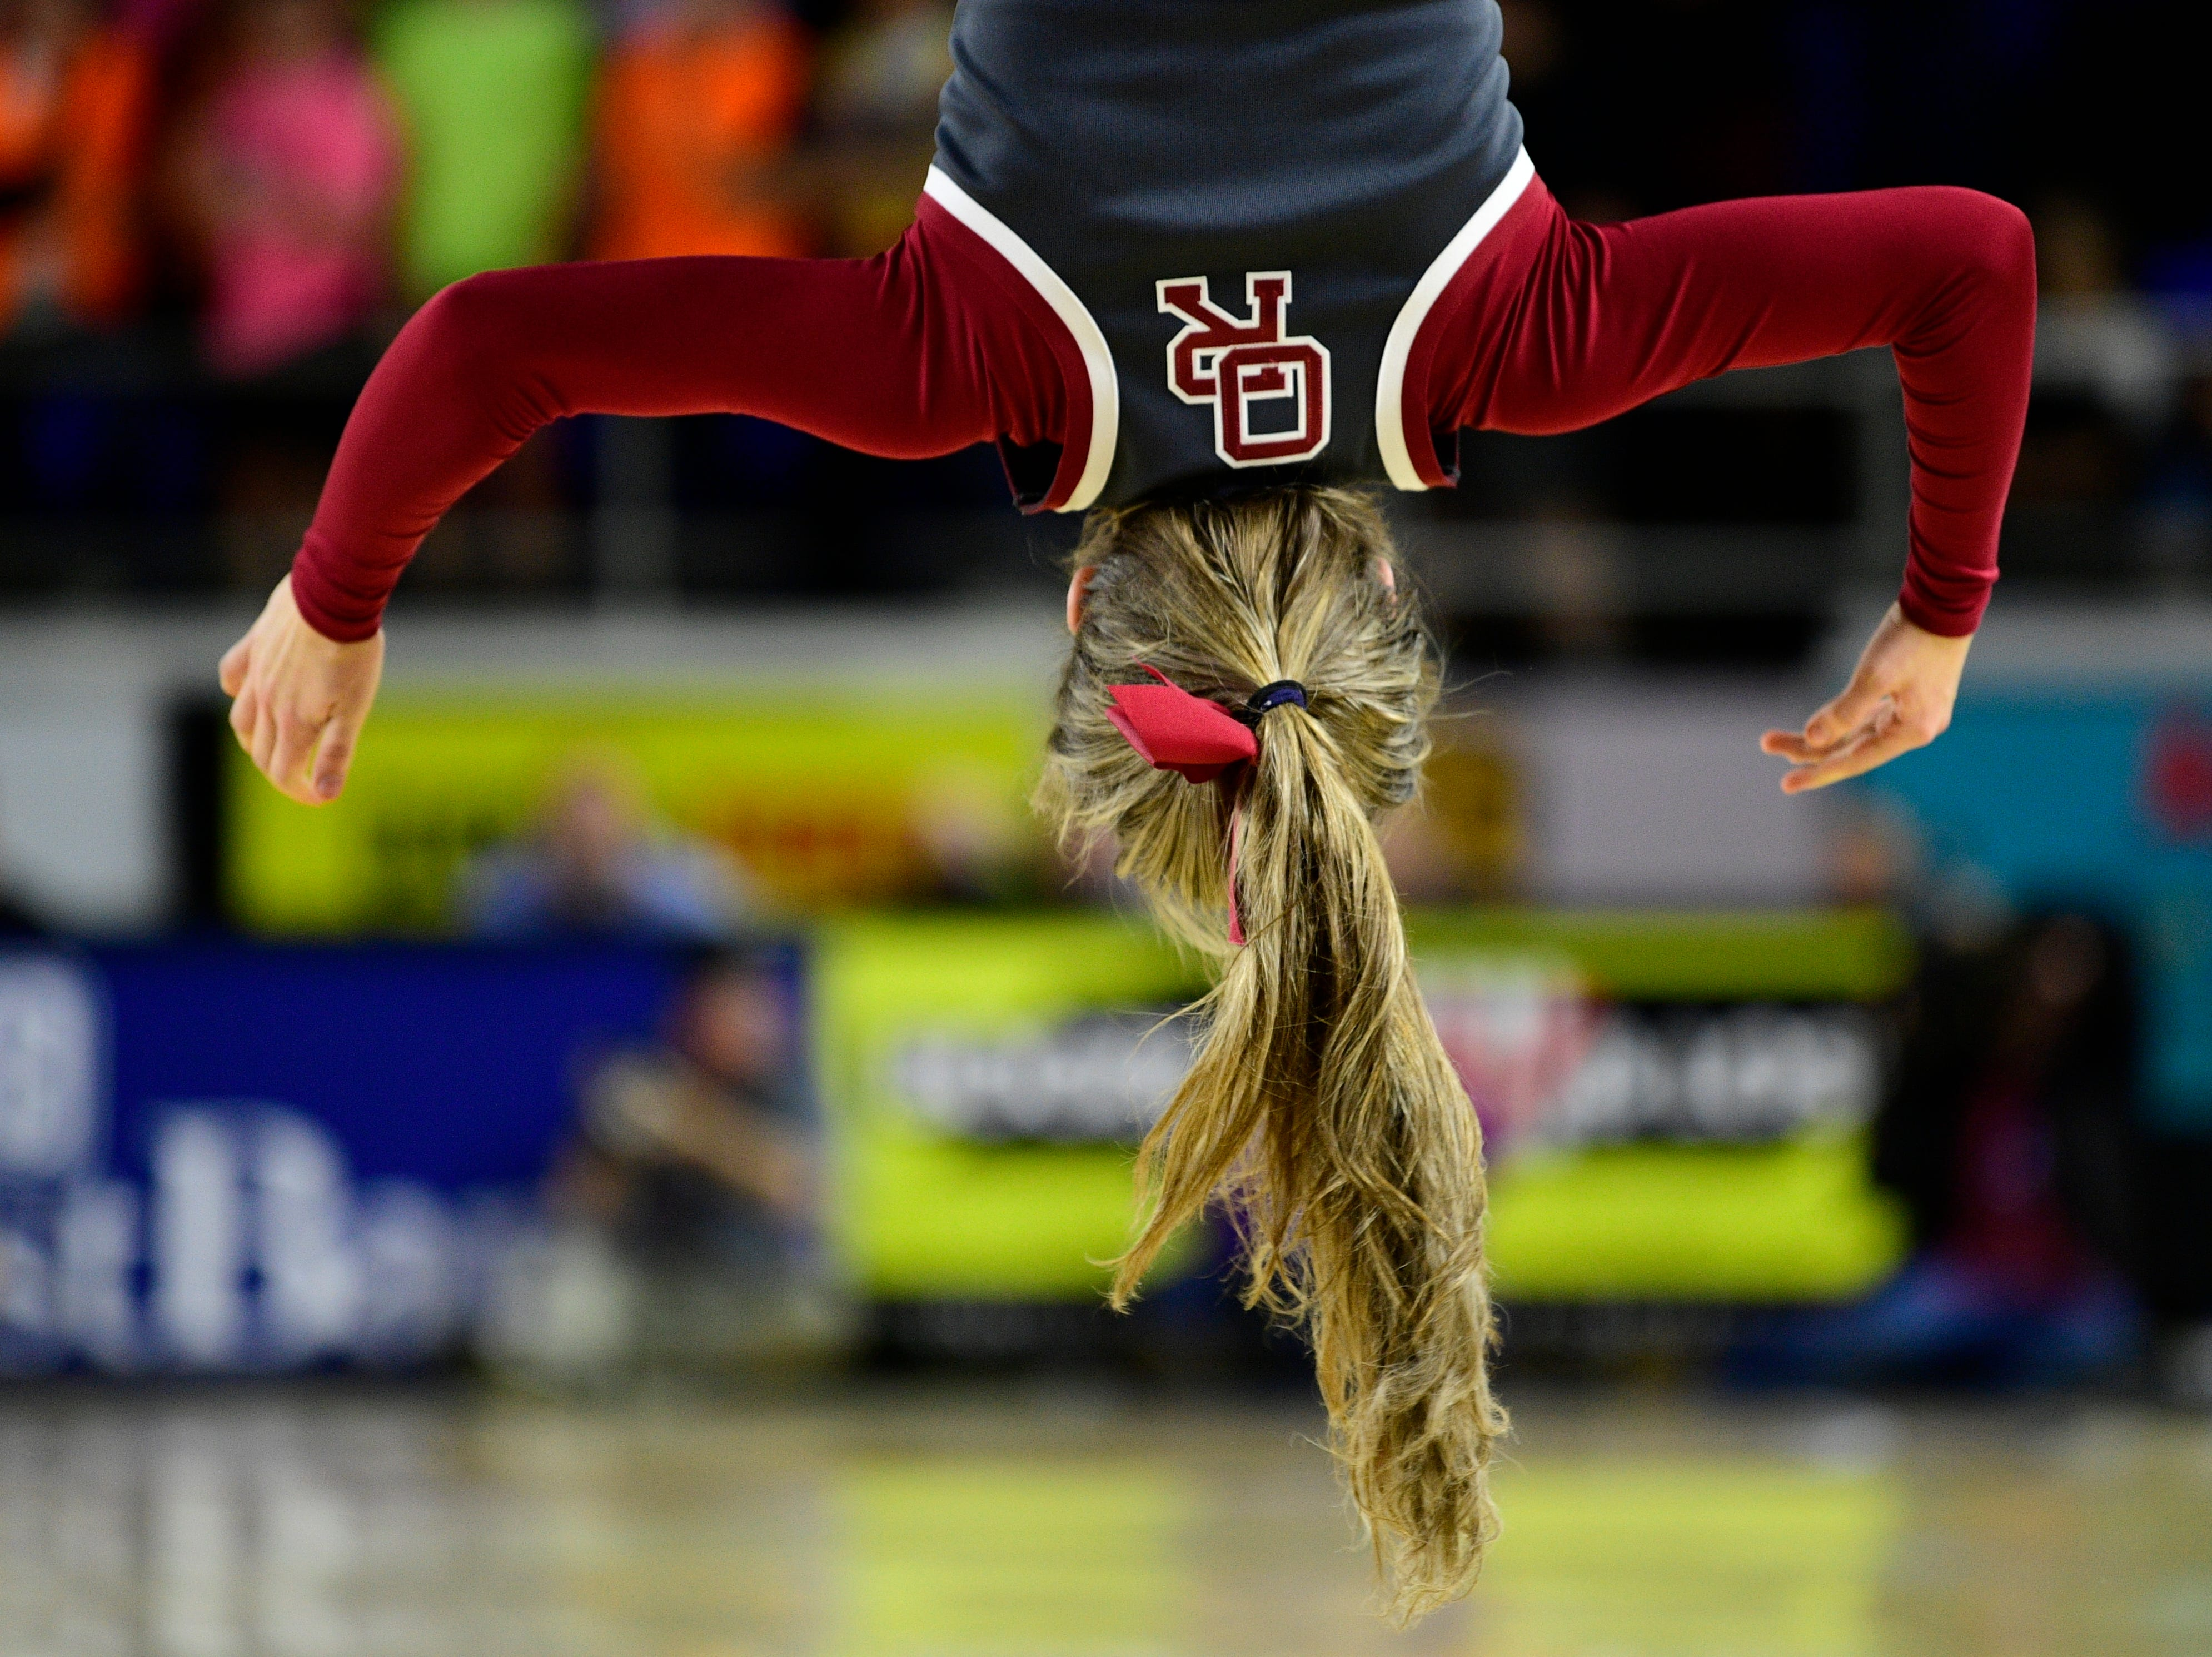 An Oak Ridge cheerleader performs a stunt during a game between Oak Ridge and Bradley Central at the TSSAA girls state tournament at the Murphy Center in Murfreesboro, Tennessee on Friday, March 8, 2019.